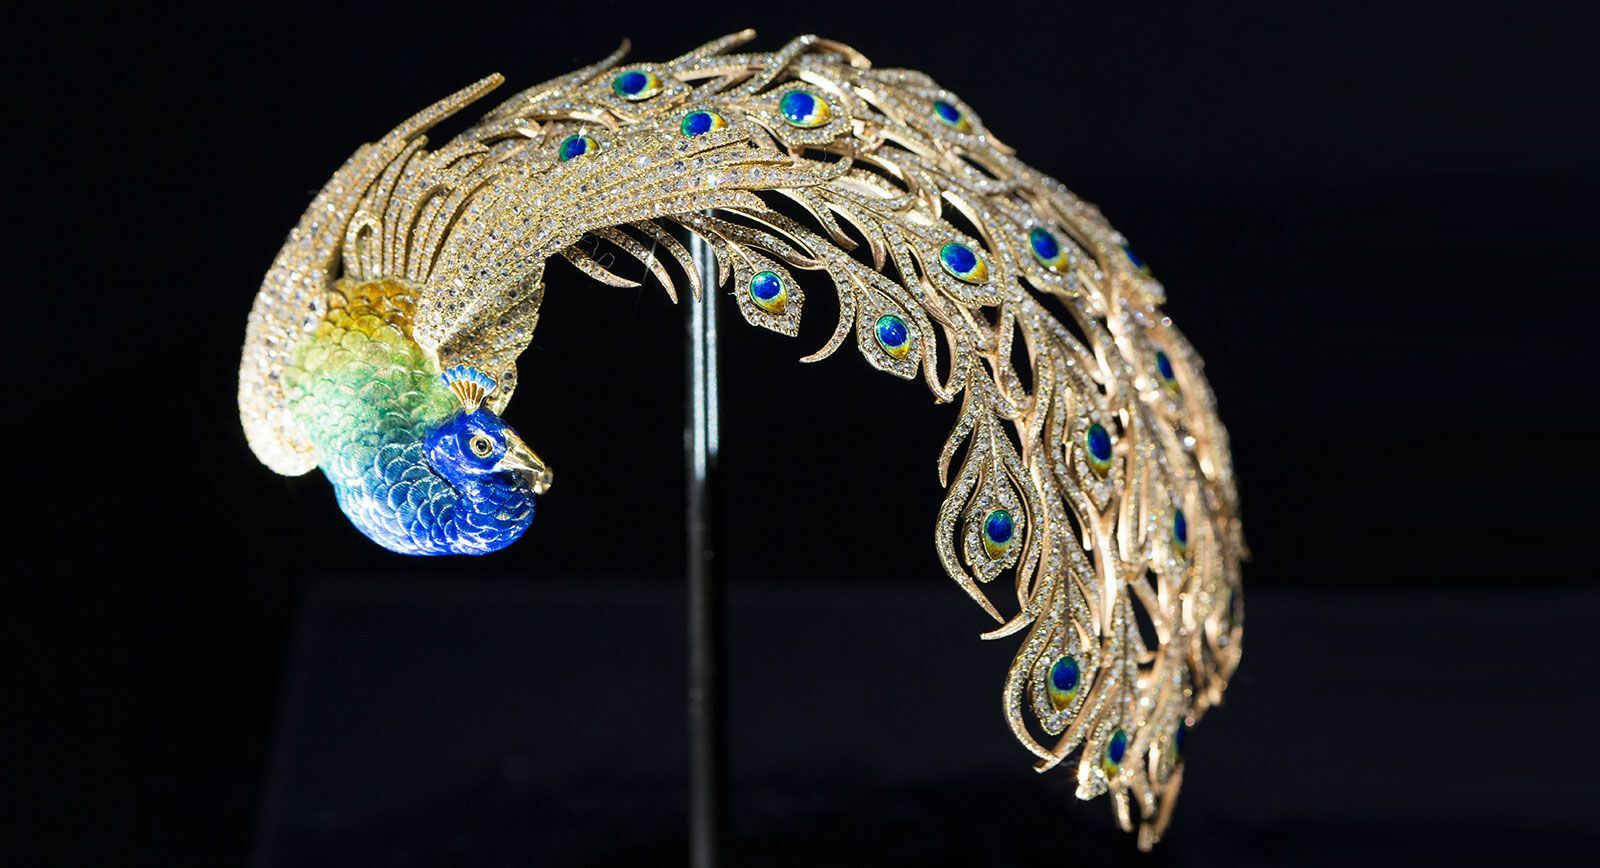 Bejewelled Treasures: The Al Thani Collection – a Must-See Exhibition